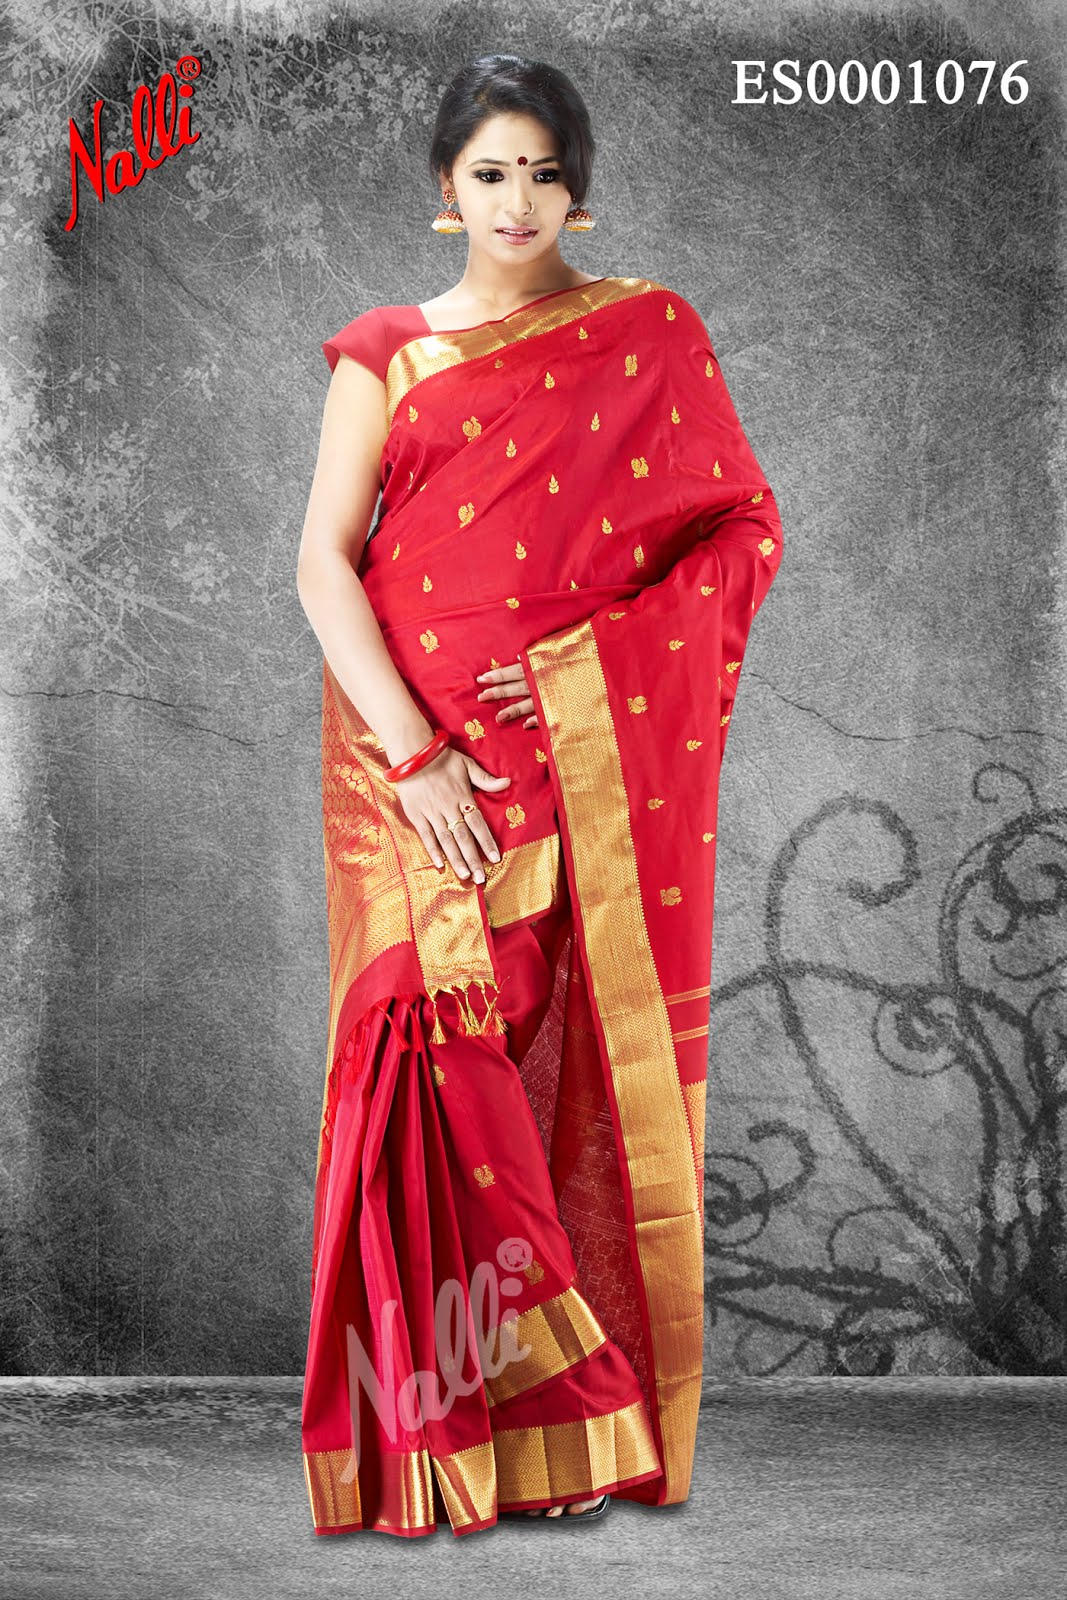 Nalli Silks Latest Silk Sarees